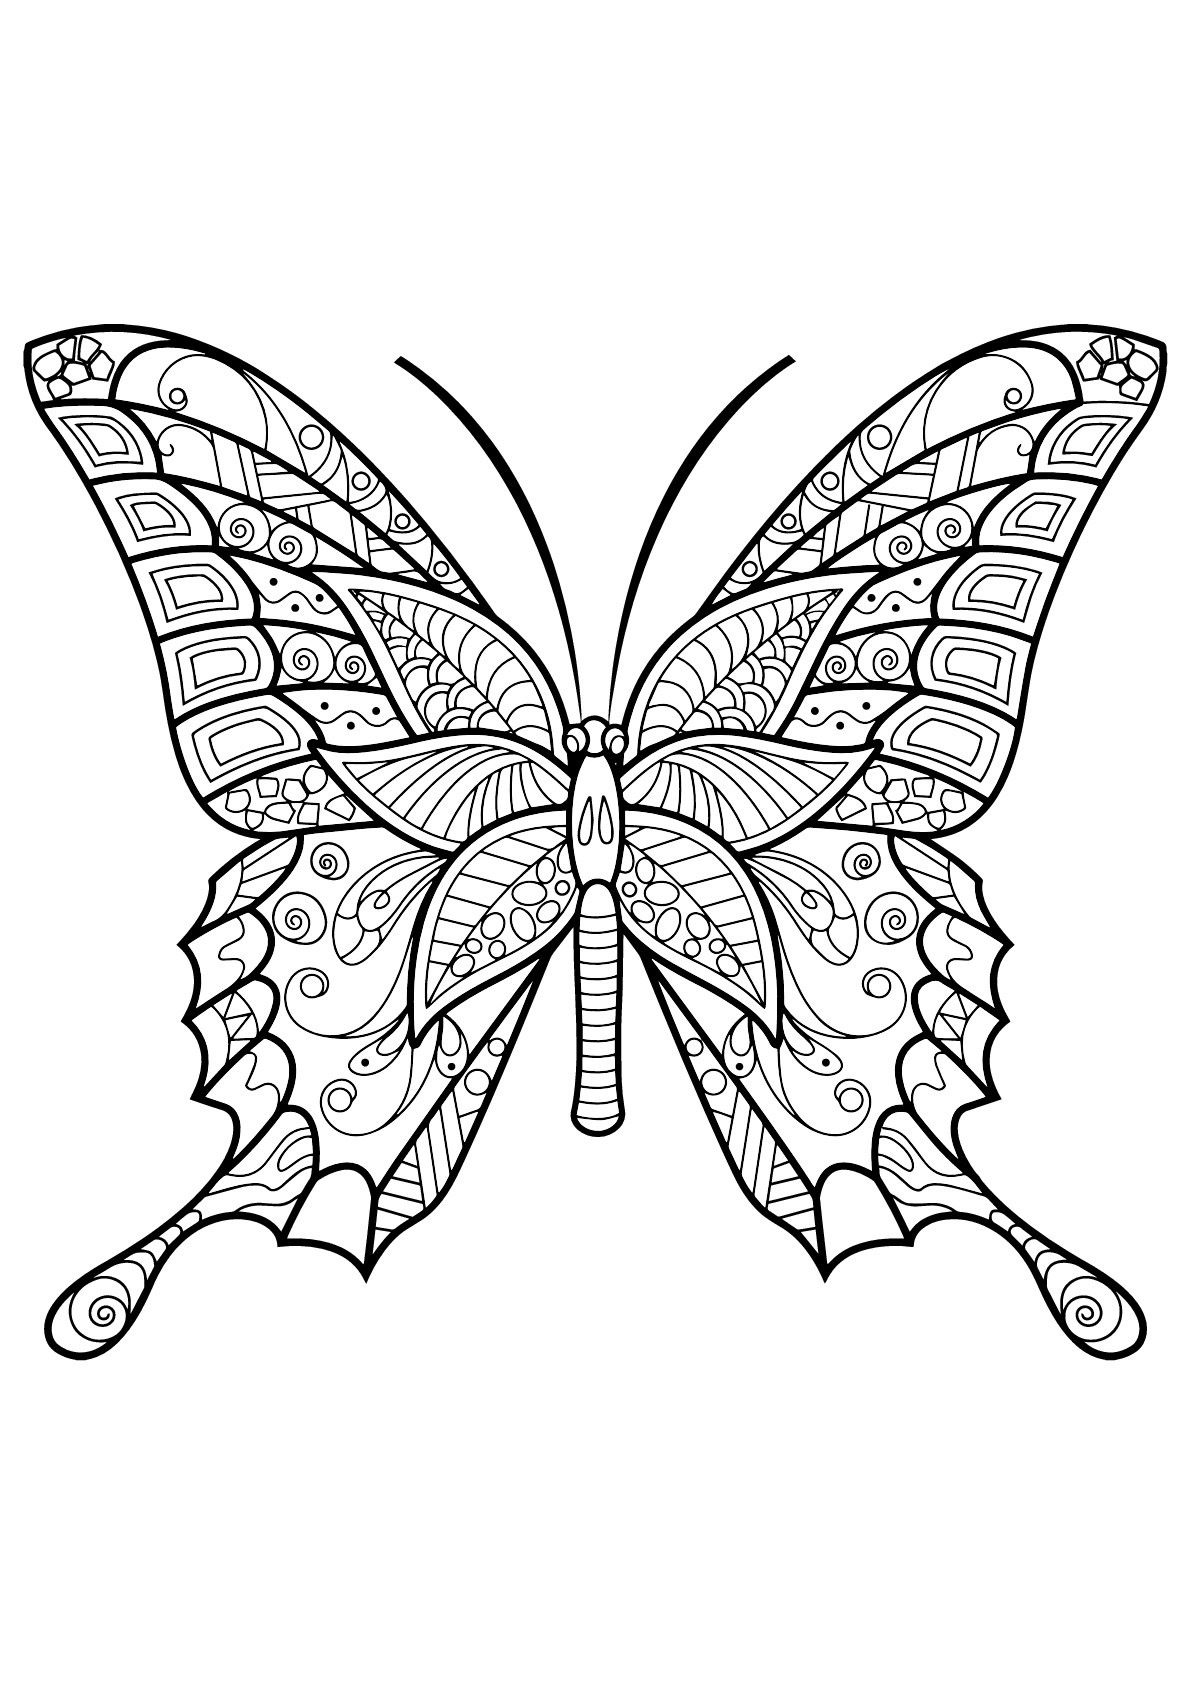 Butterflies Free To Color For Children